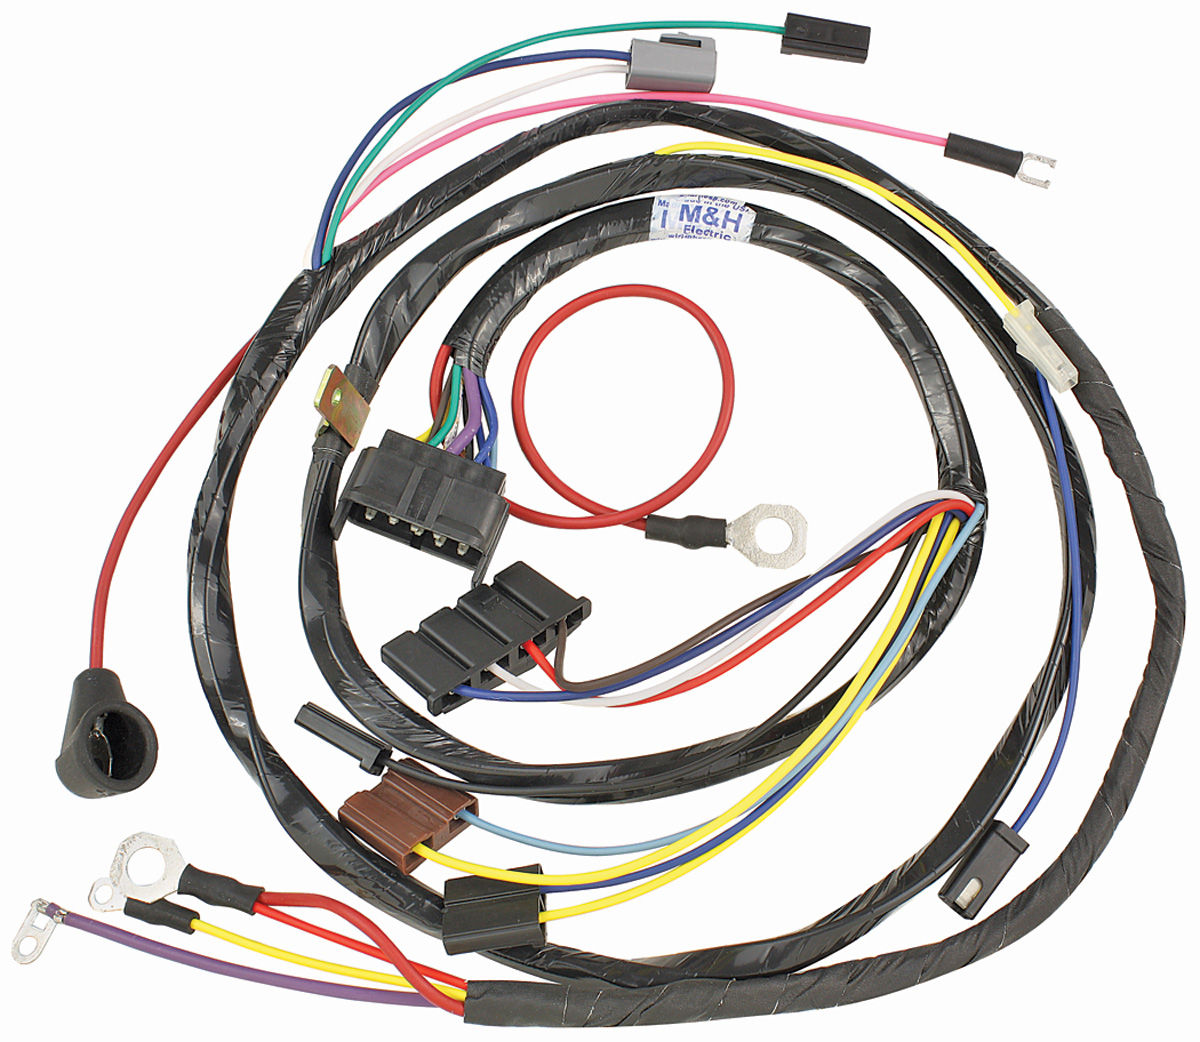 small resolution of wiring harness for 1964 buick riviera wiring library rh 8 bloxhuette de 1962 buick riviera 1963 buick riviera